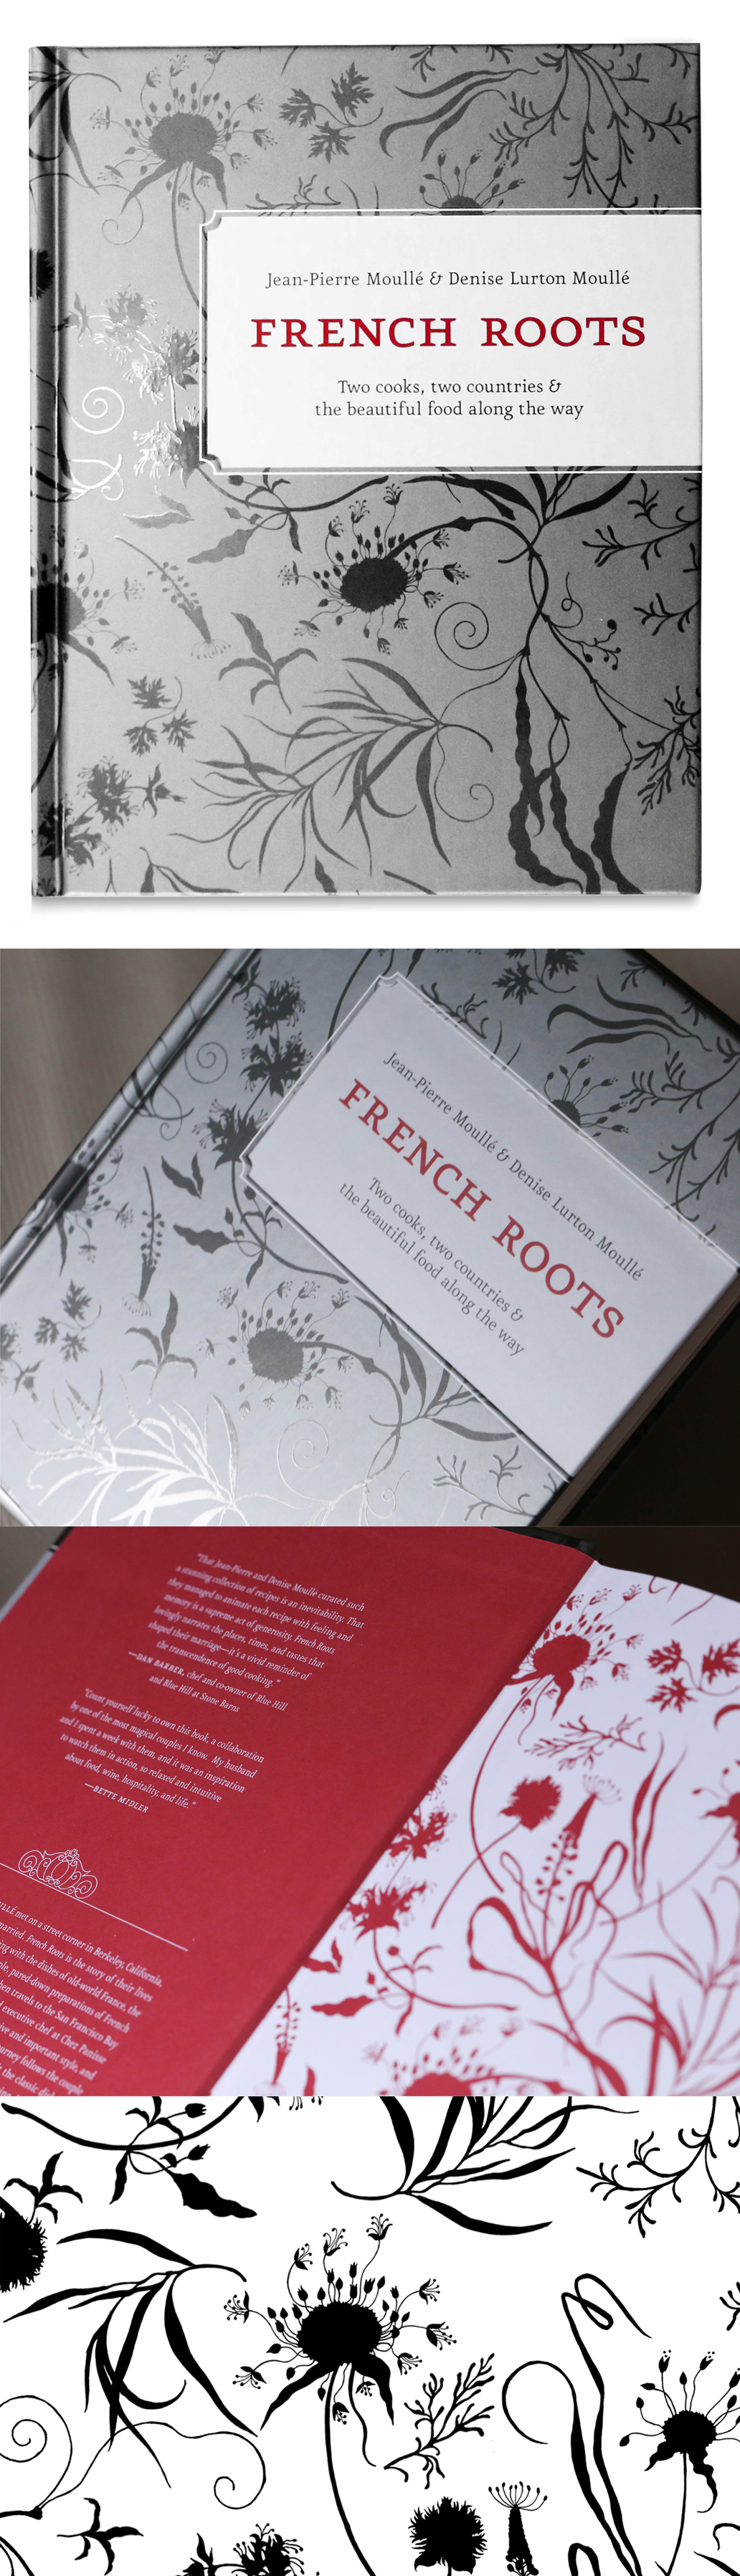 French Roots Inner Book Cover Design | Book Covers & Editorial ...